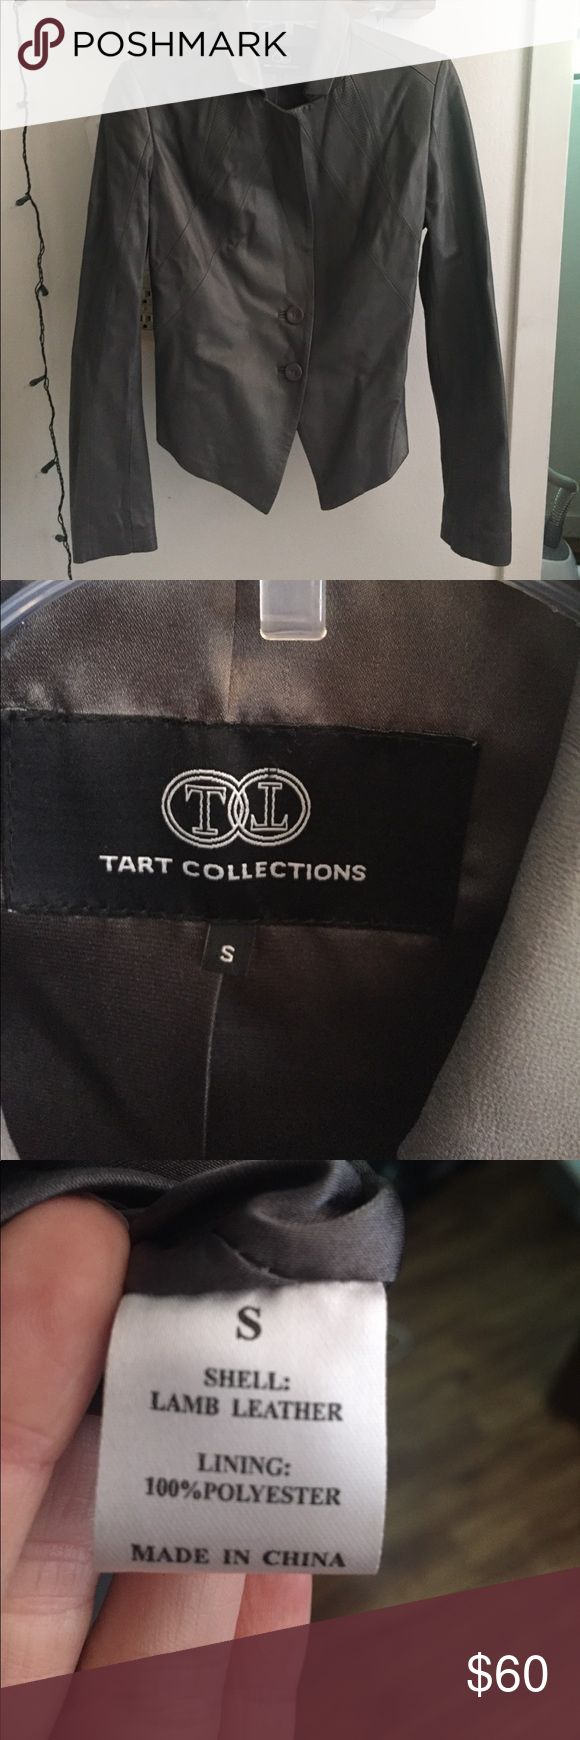 Lamb leather Tart Collections jacket Brand new lamb leather jacket. It has sat in my closet for a couple years because it is beautiful, but it doesn't fit my style, so I never wore it. I want to find it a good home. Tart collections is the brand. Tart Jackets & Coats Blazers